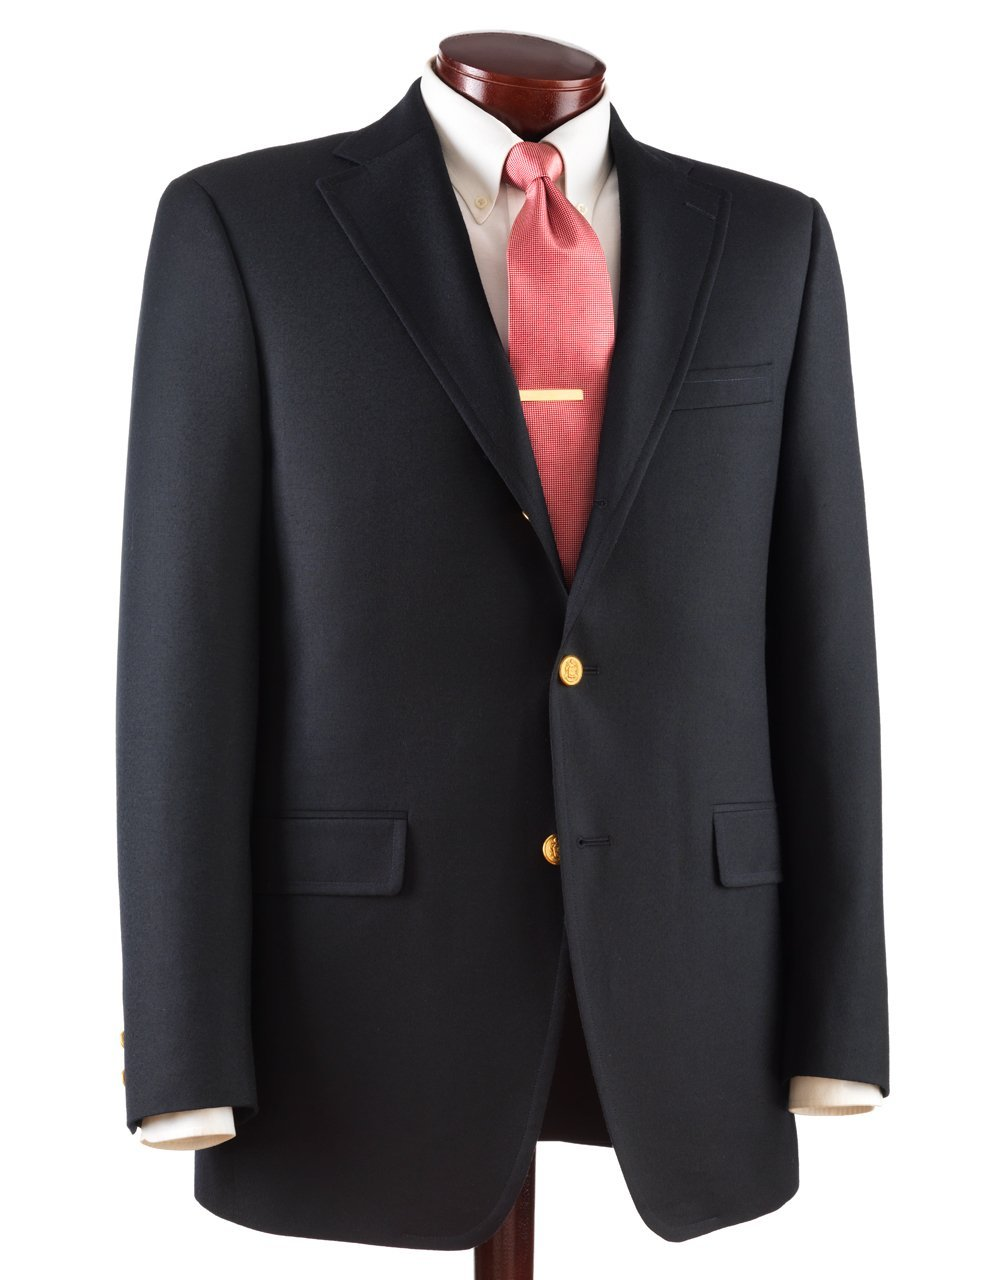 J.PRESS BLUE BLAZER - AUSTRALIAN PEPPIN MERINO WOOL 3 BUTTON - NAVY